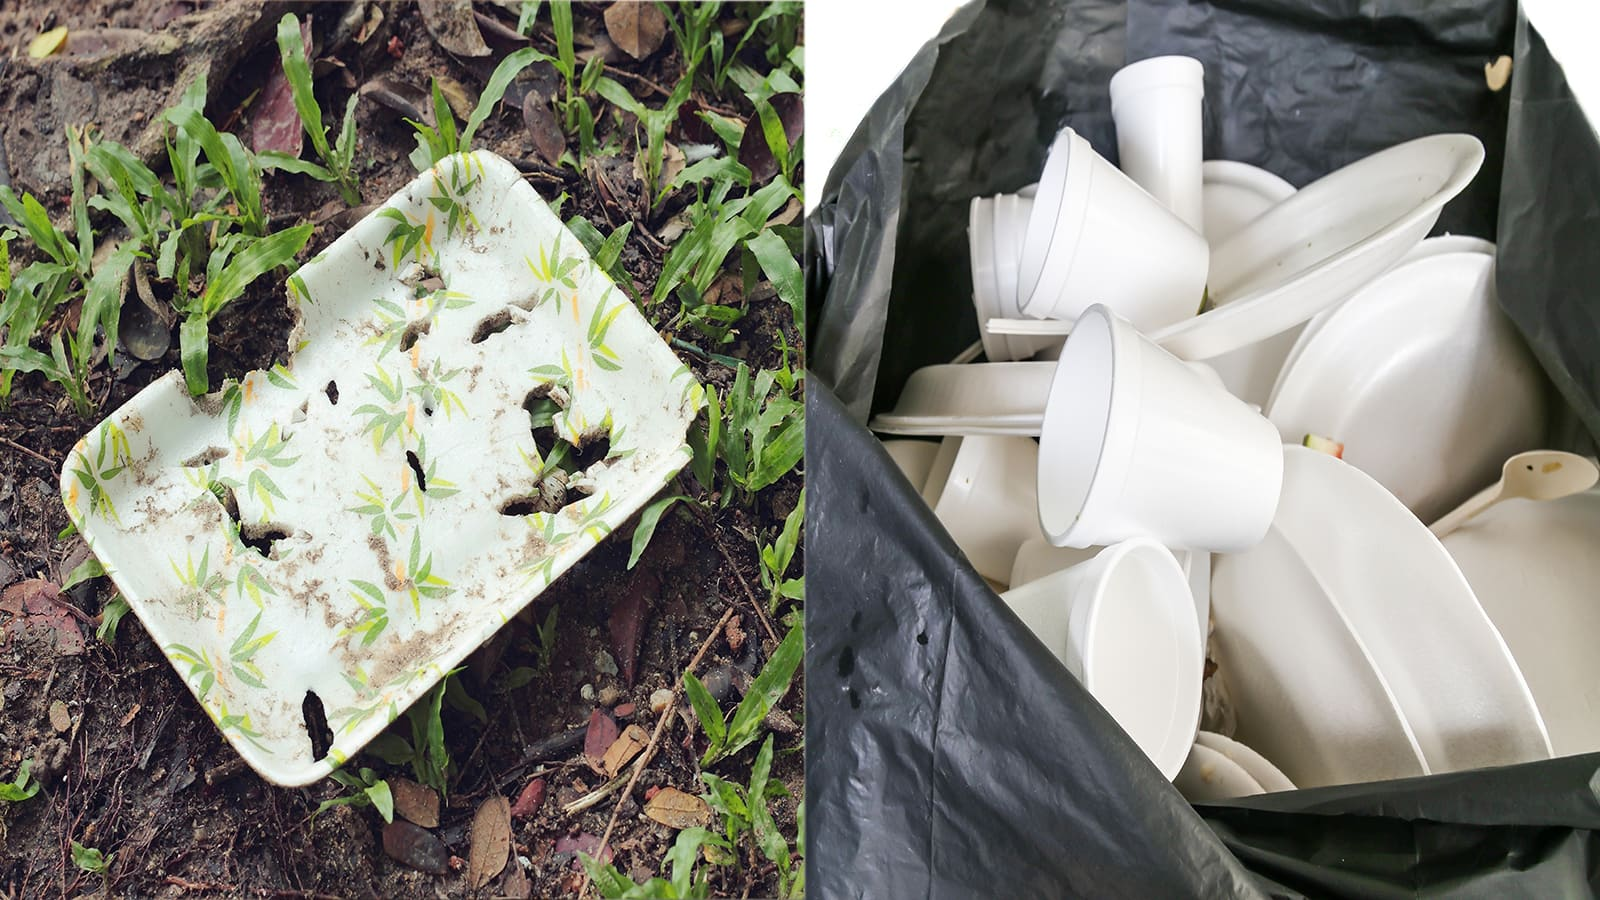 Maine Declares Ban on Styrofoam That Hurts the Environment